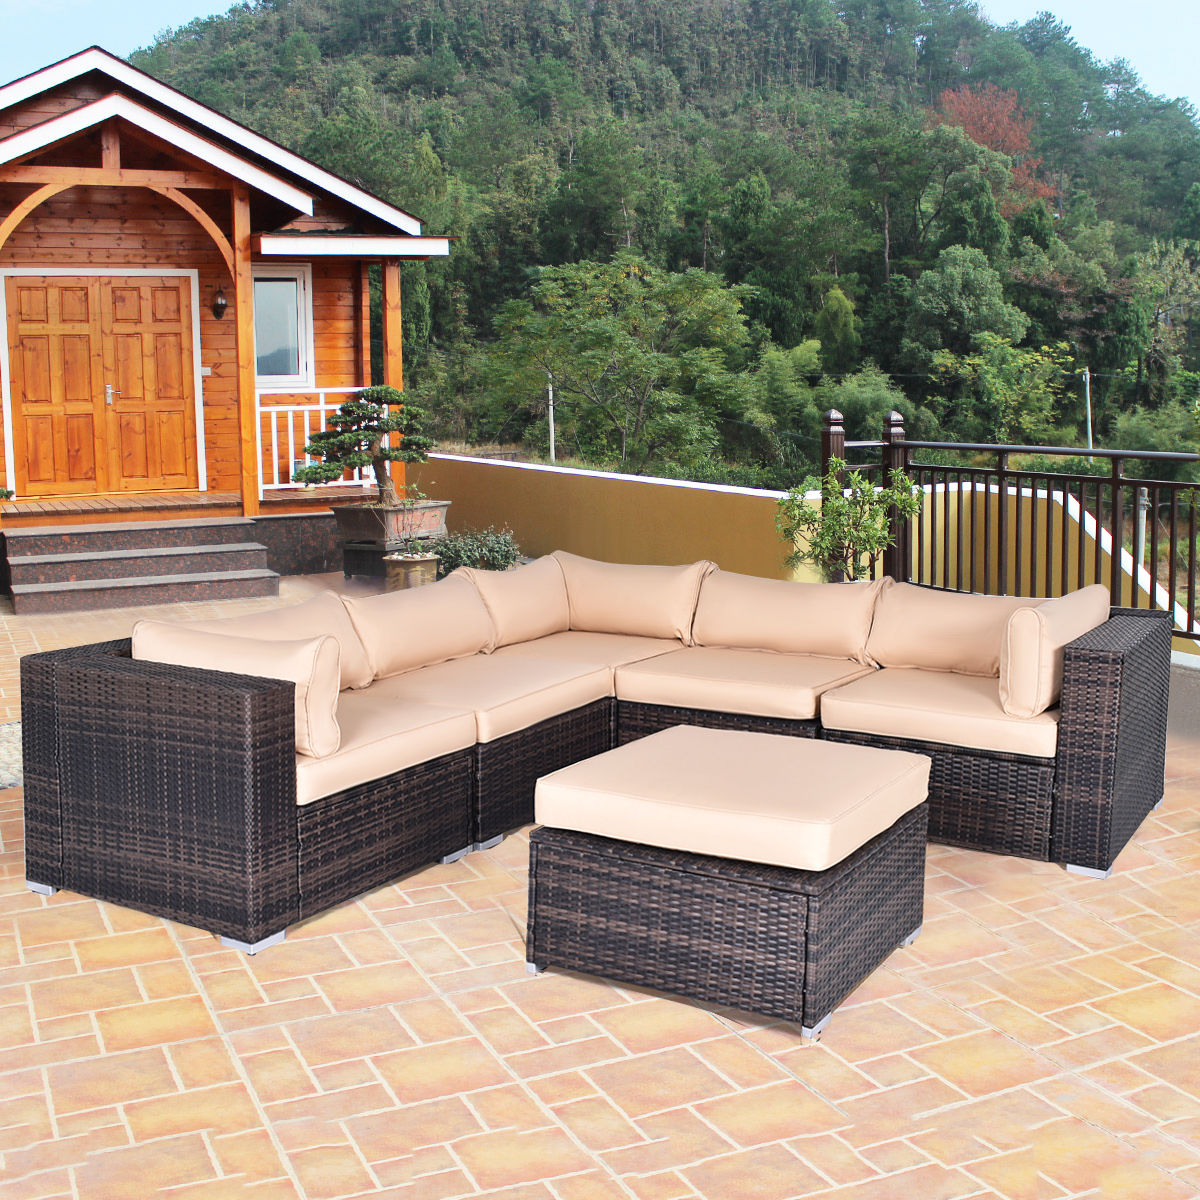 Costway 6 PCS Outdoor Rattan Wicker Furniture Set Sectional Sofa Ottoman  Cushioned Patio